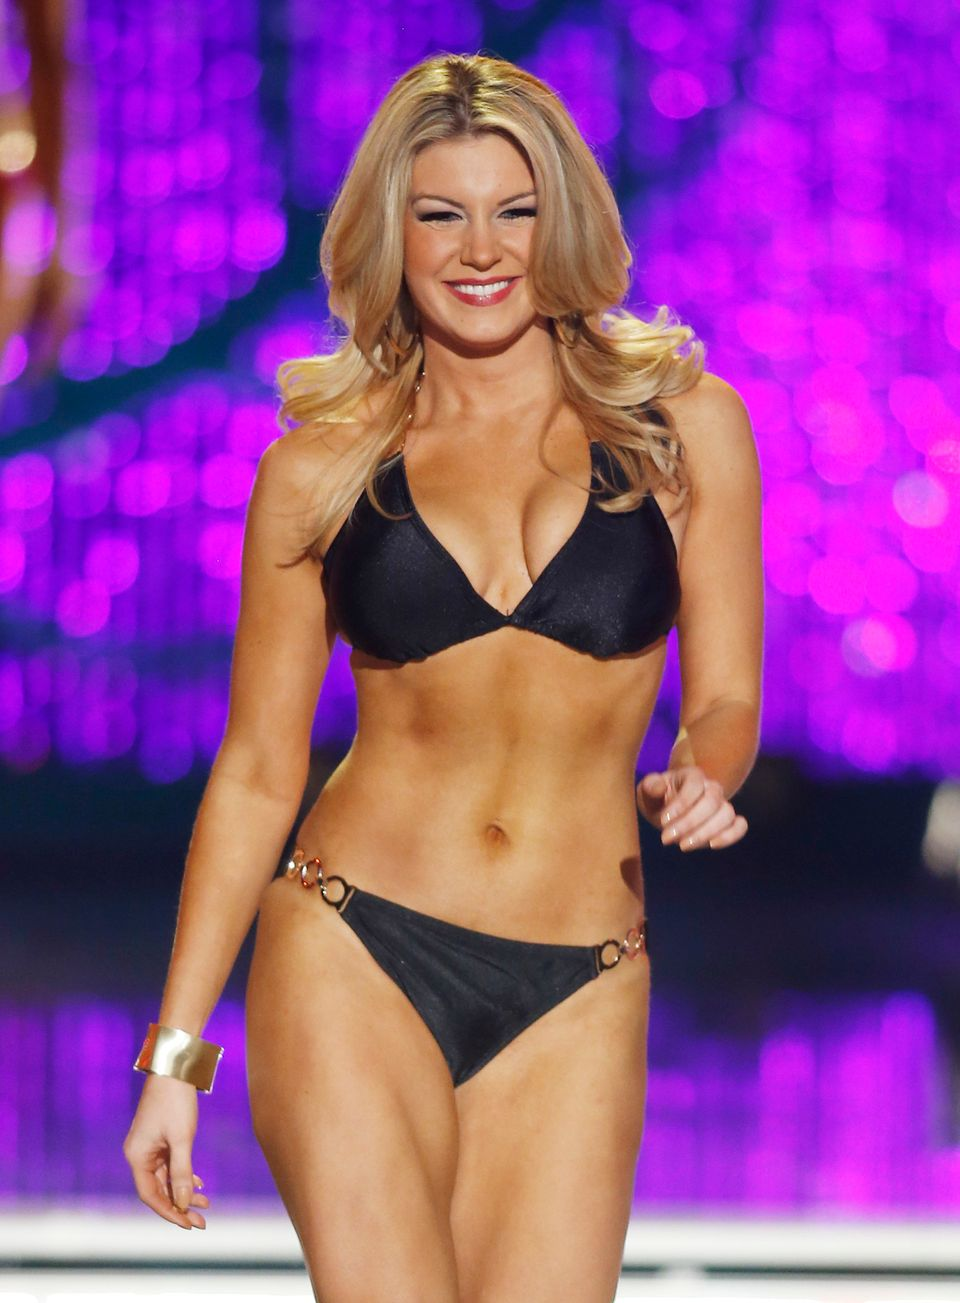 Miss America's 2013 winner, Miss New York, Mallory Hagan, is the first New Yorker to win since Vanessa Williams back in 1984.